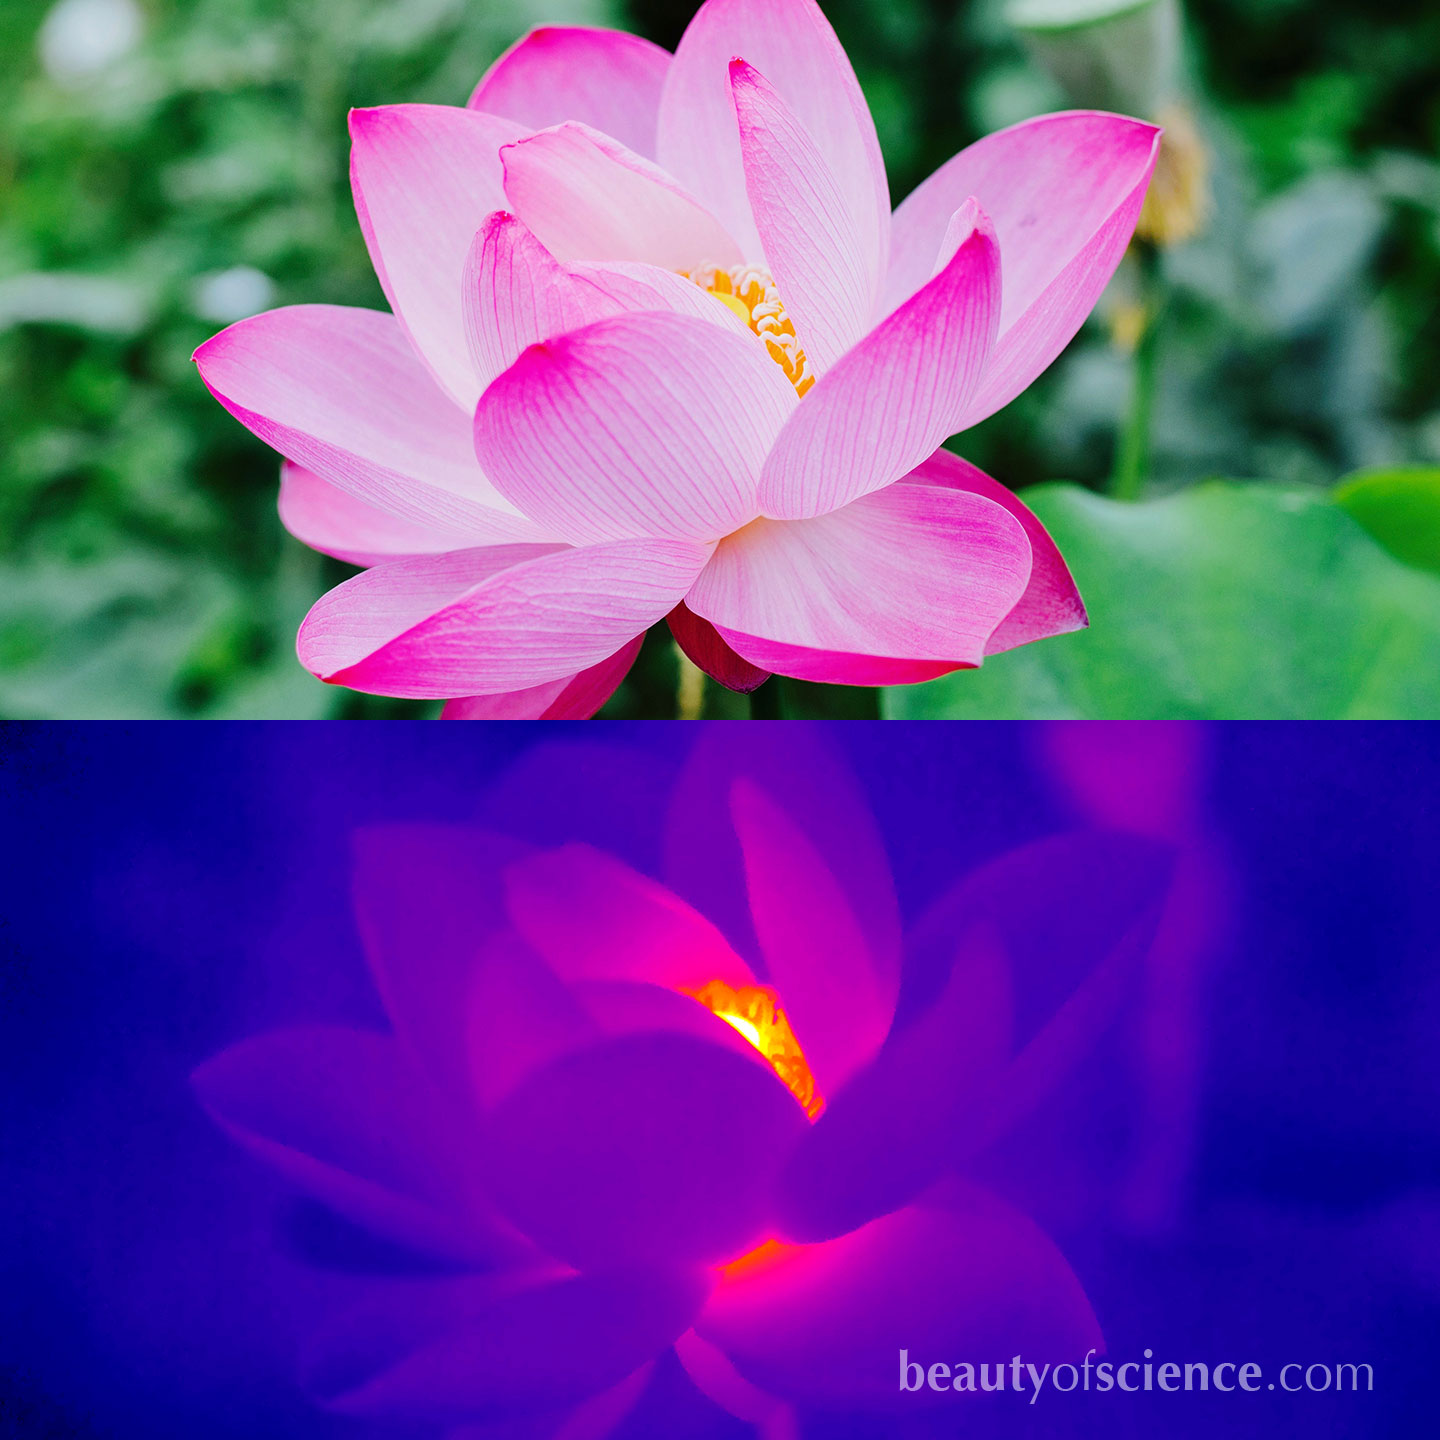 Sacred Lotus is one of only a few plants that can generate heat and regulate their temperature.